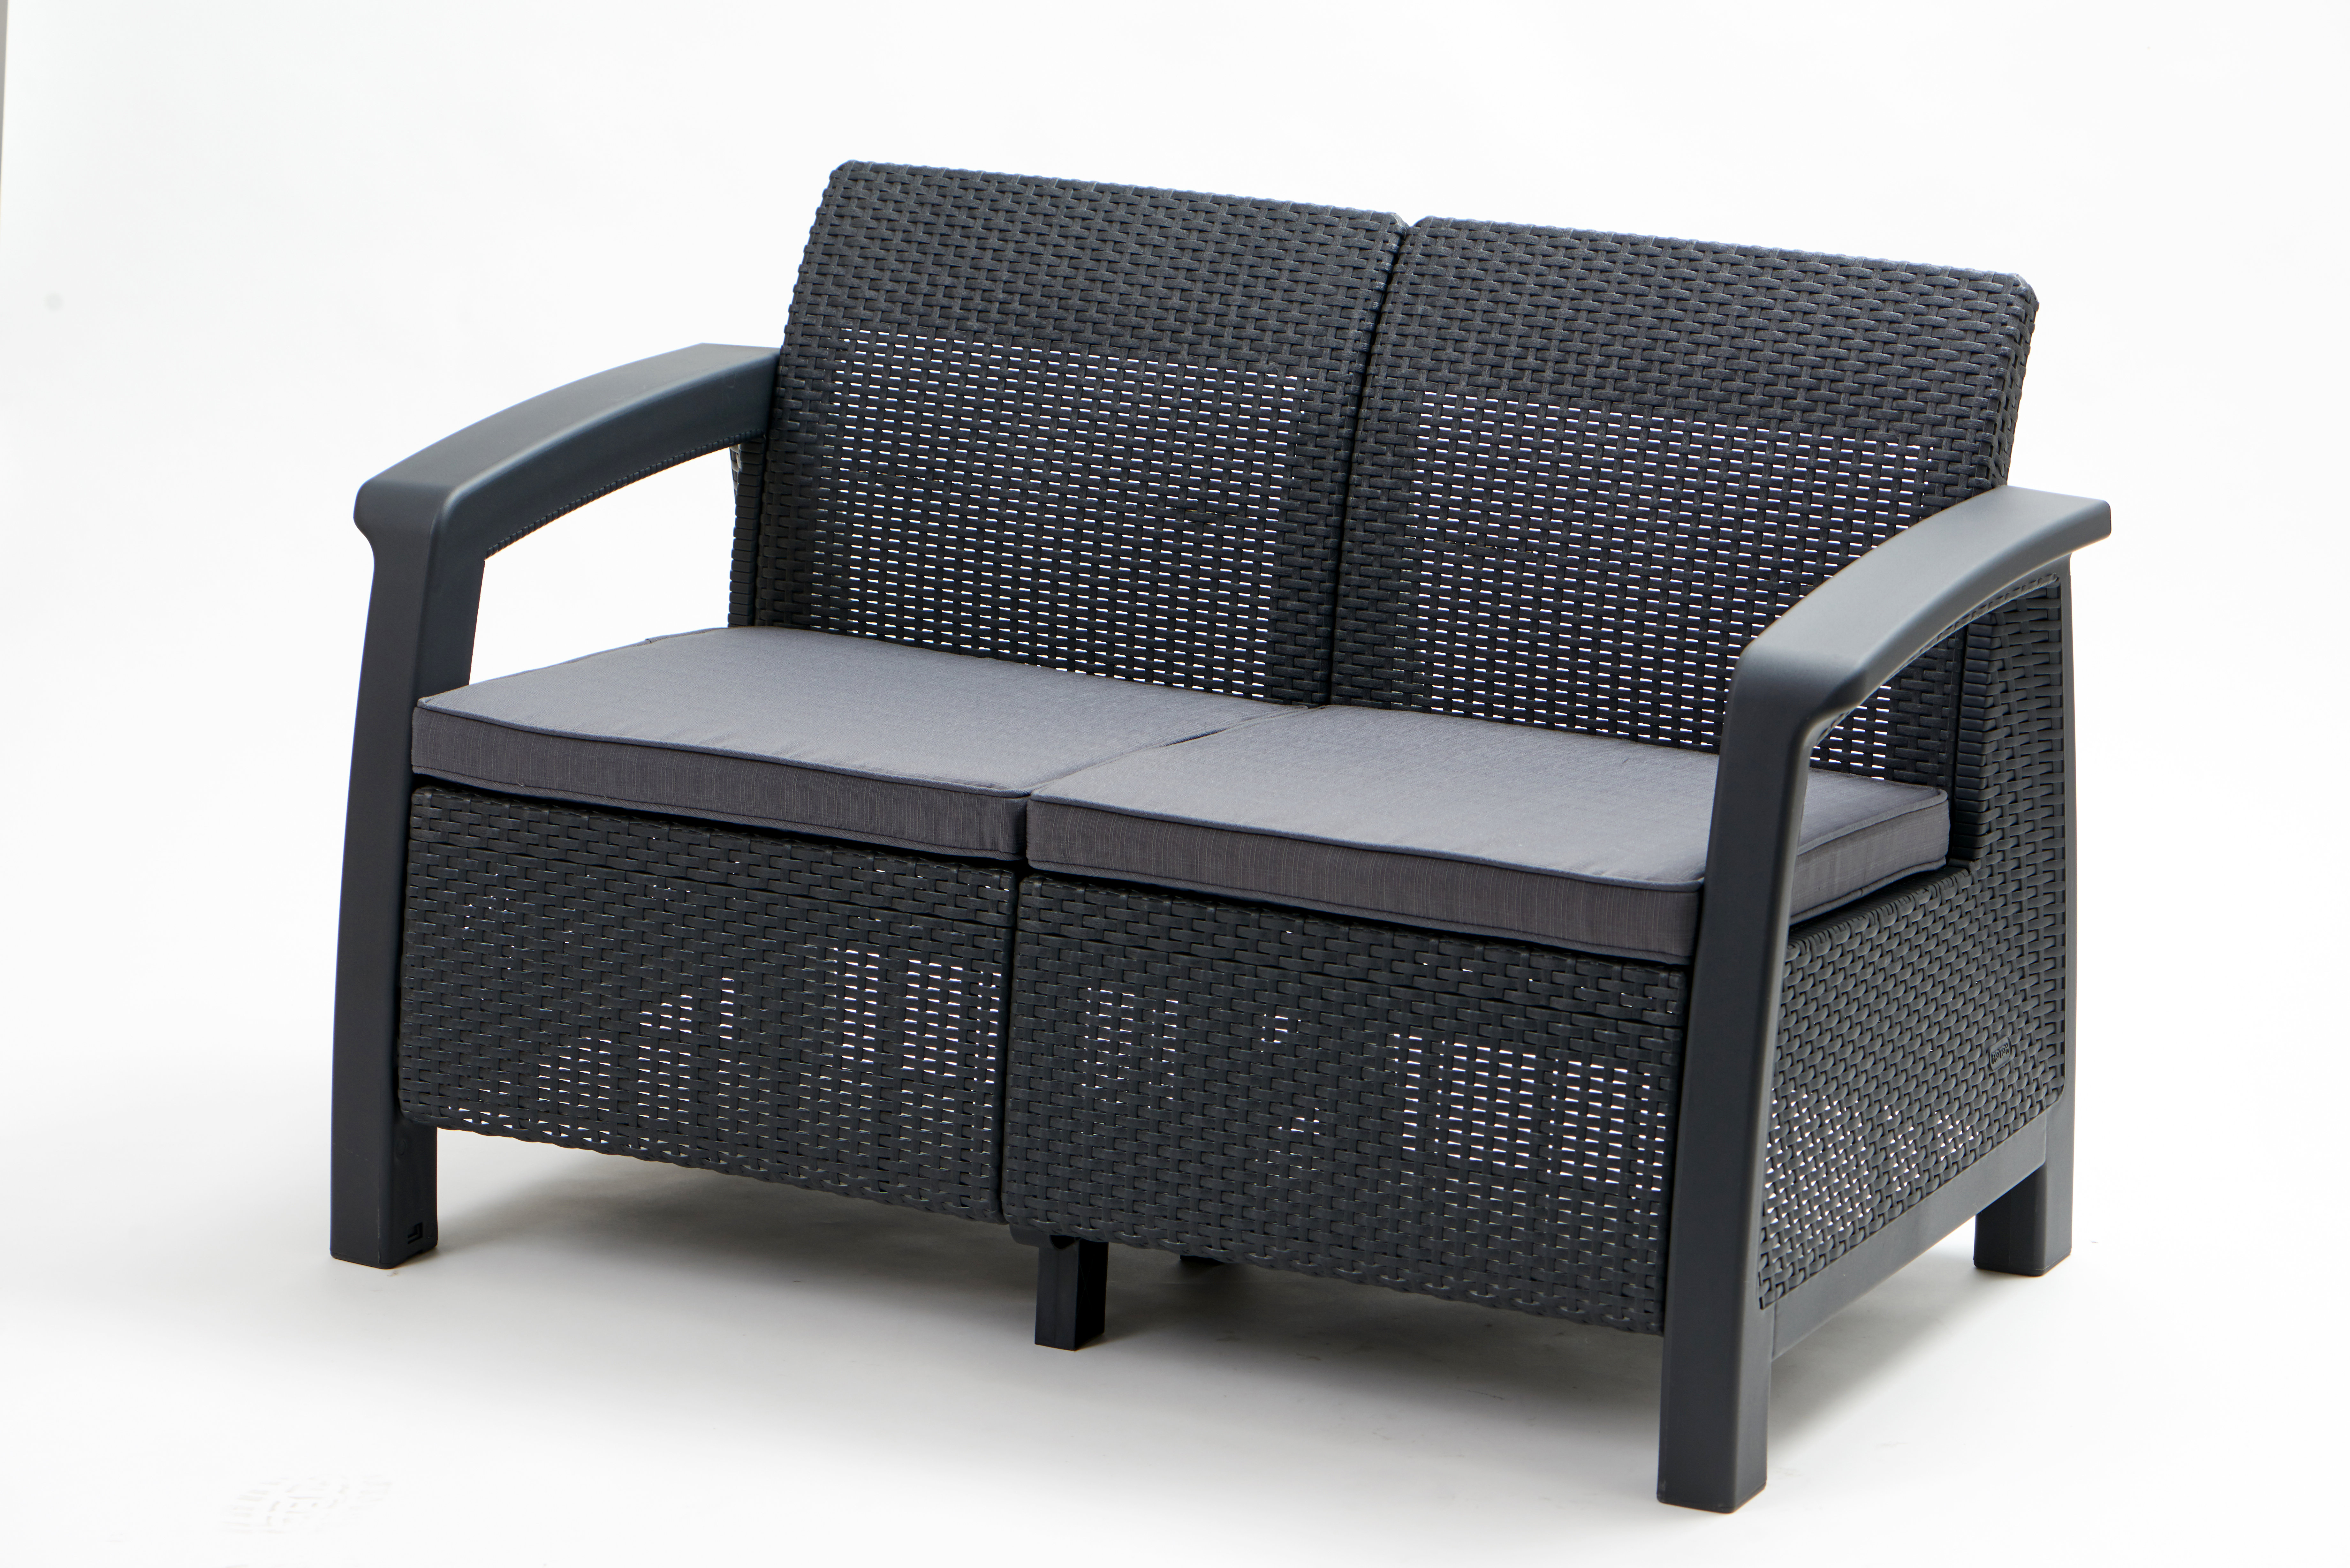 Mullenax Outdoor Loveseats With Cushions Pertaining To Well Known Berard Patio Loveseat With Cushions (View 8 of 20)